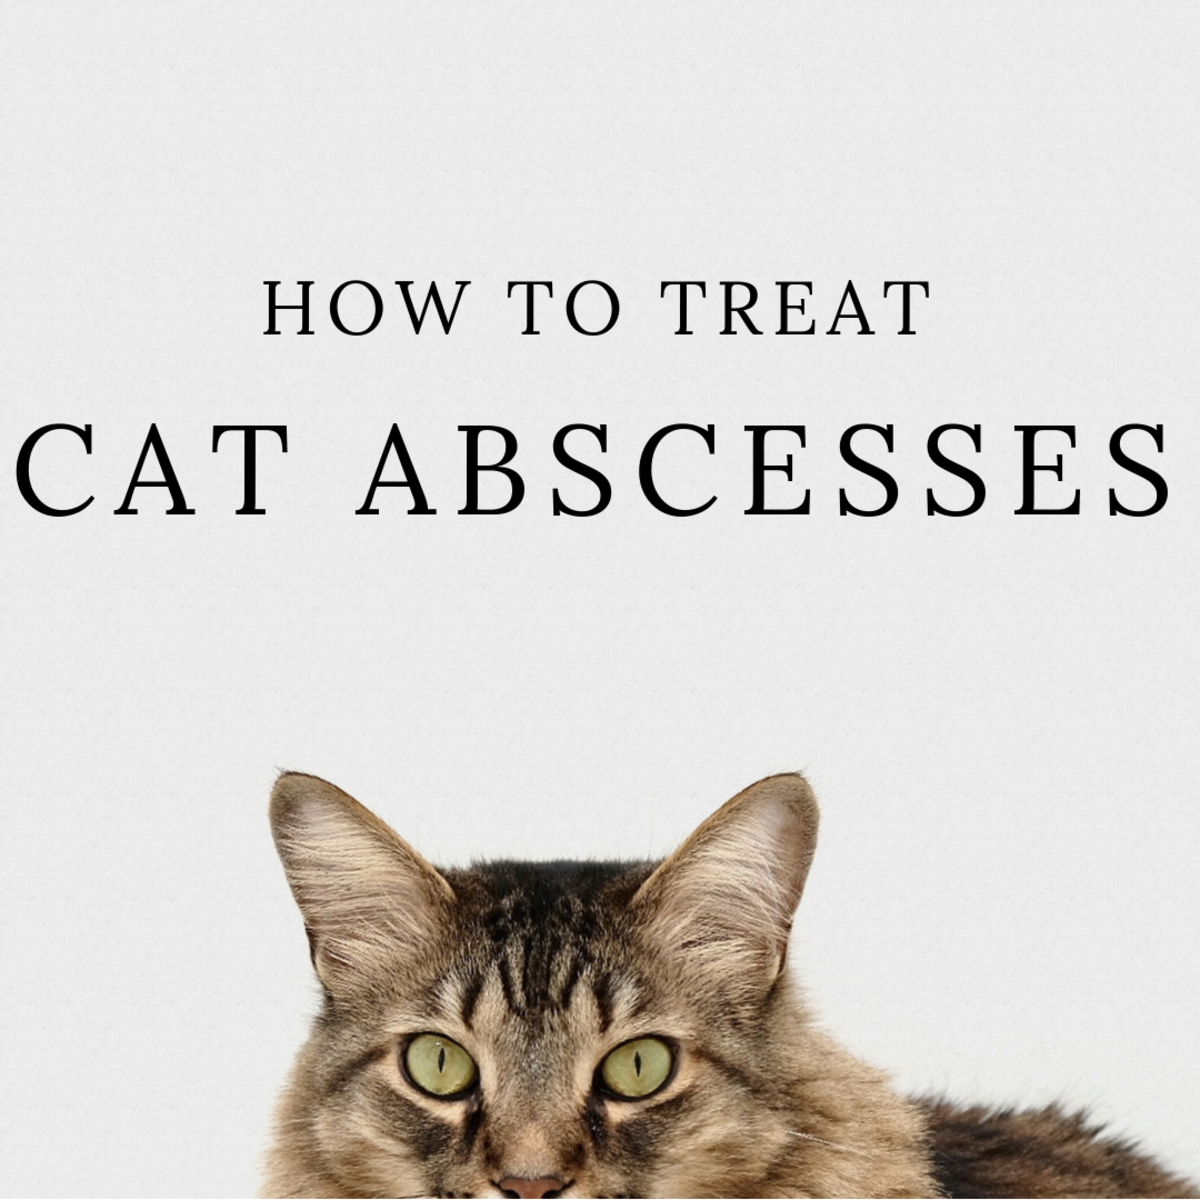 How to Treat Cat Abscesses at Home